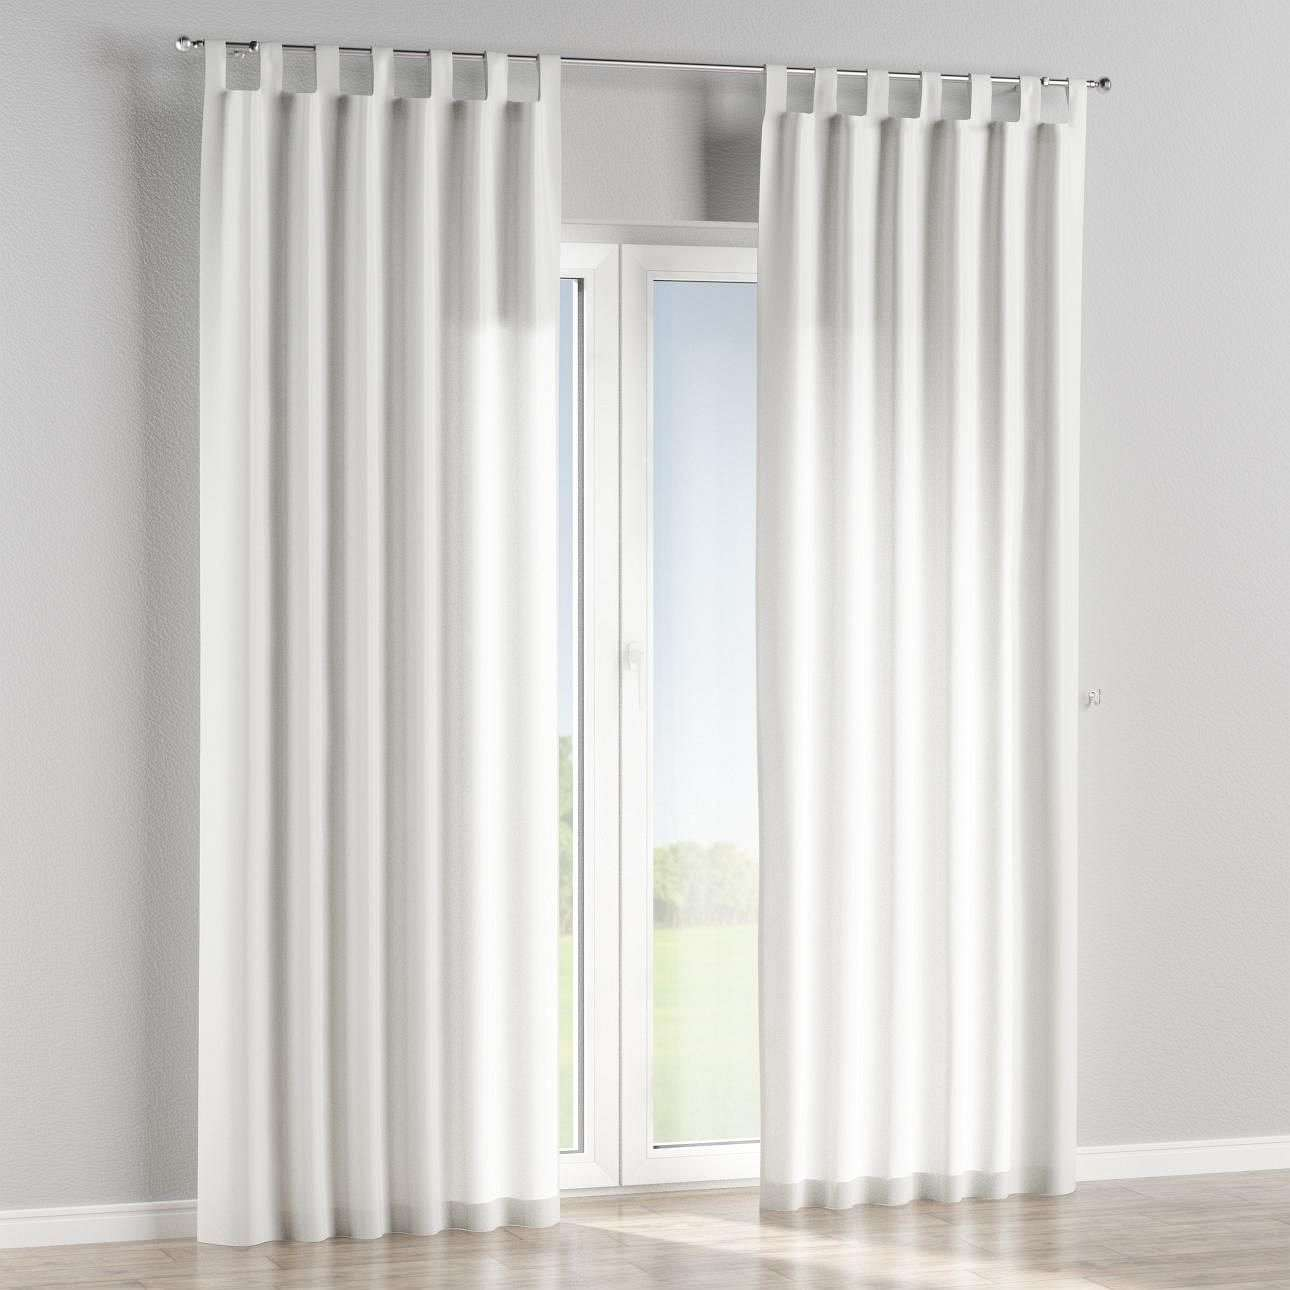 Tab top curtains in collection SALE, fabric: 137-44